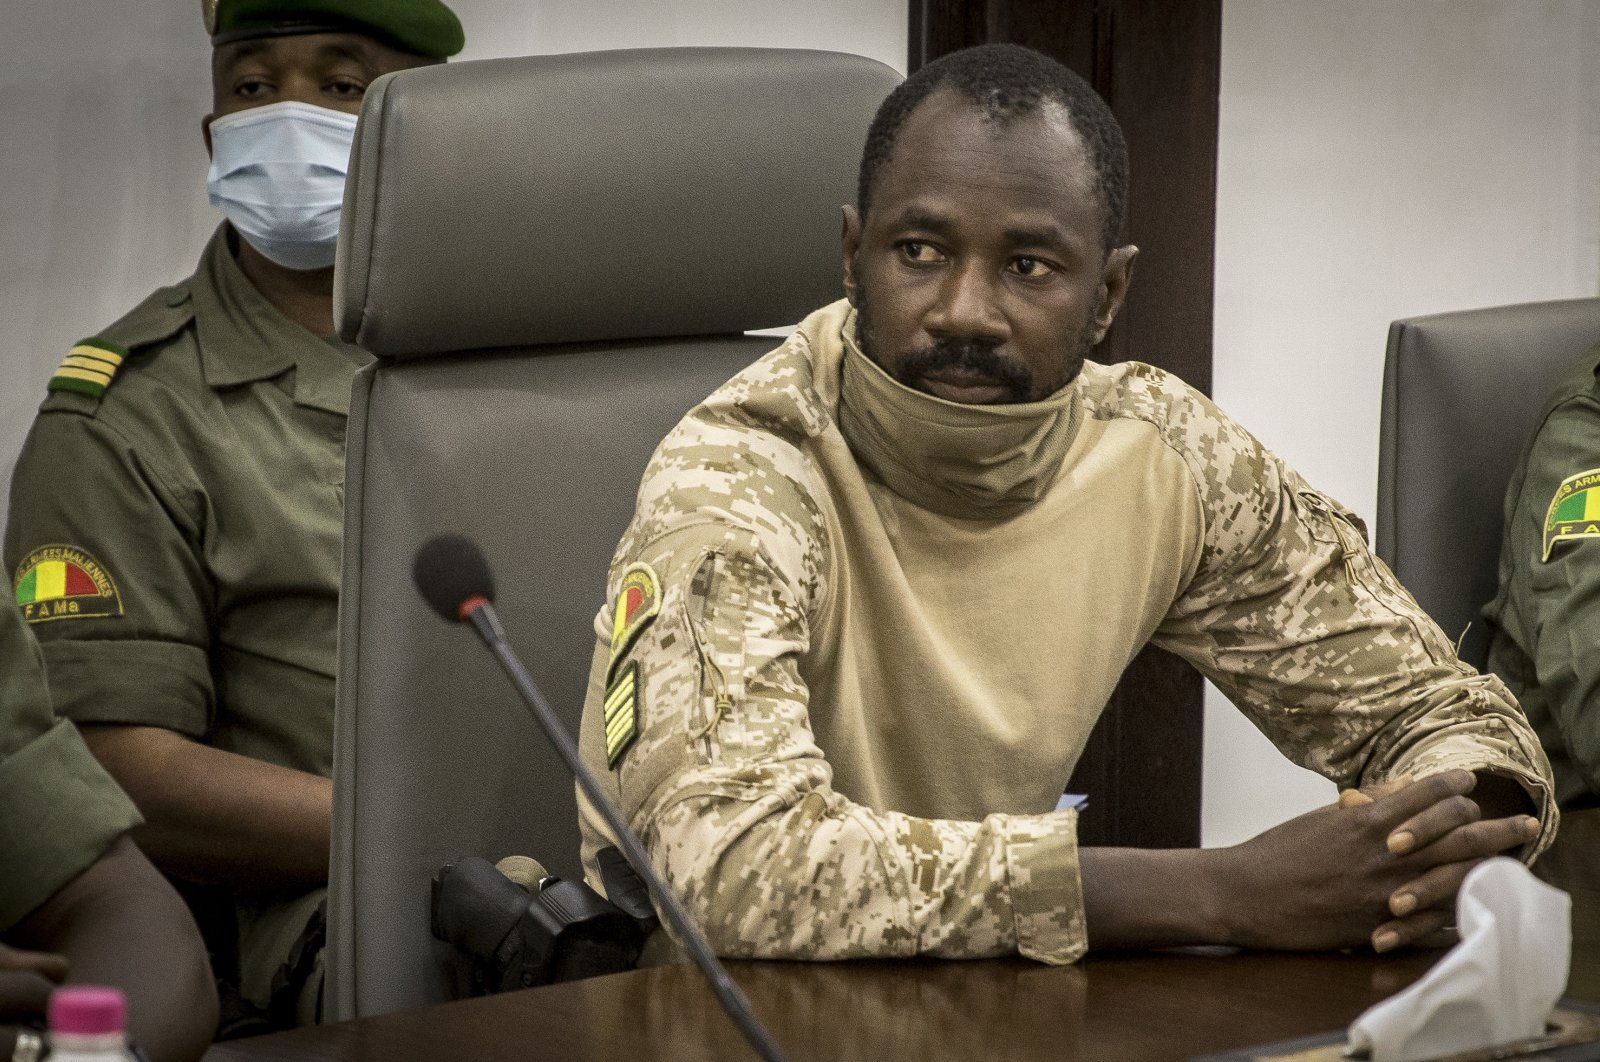 Col. Assimi Goita meets with the Economic Community of West African States at the Ministry of Defense, in Bamako, Mali, Aug. 22, 2020. (AP Photo)